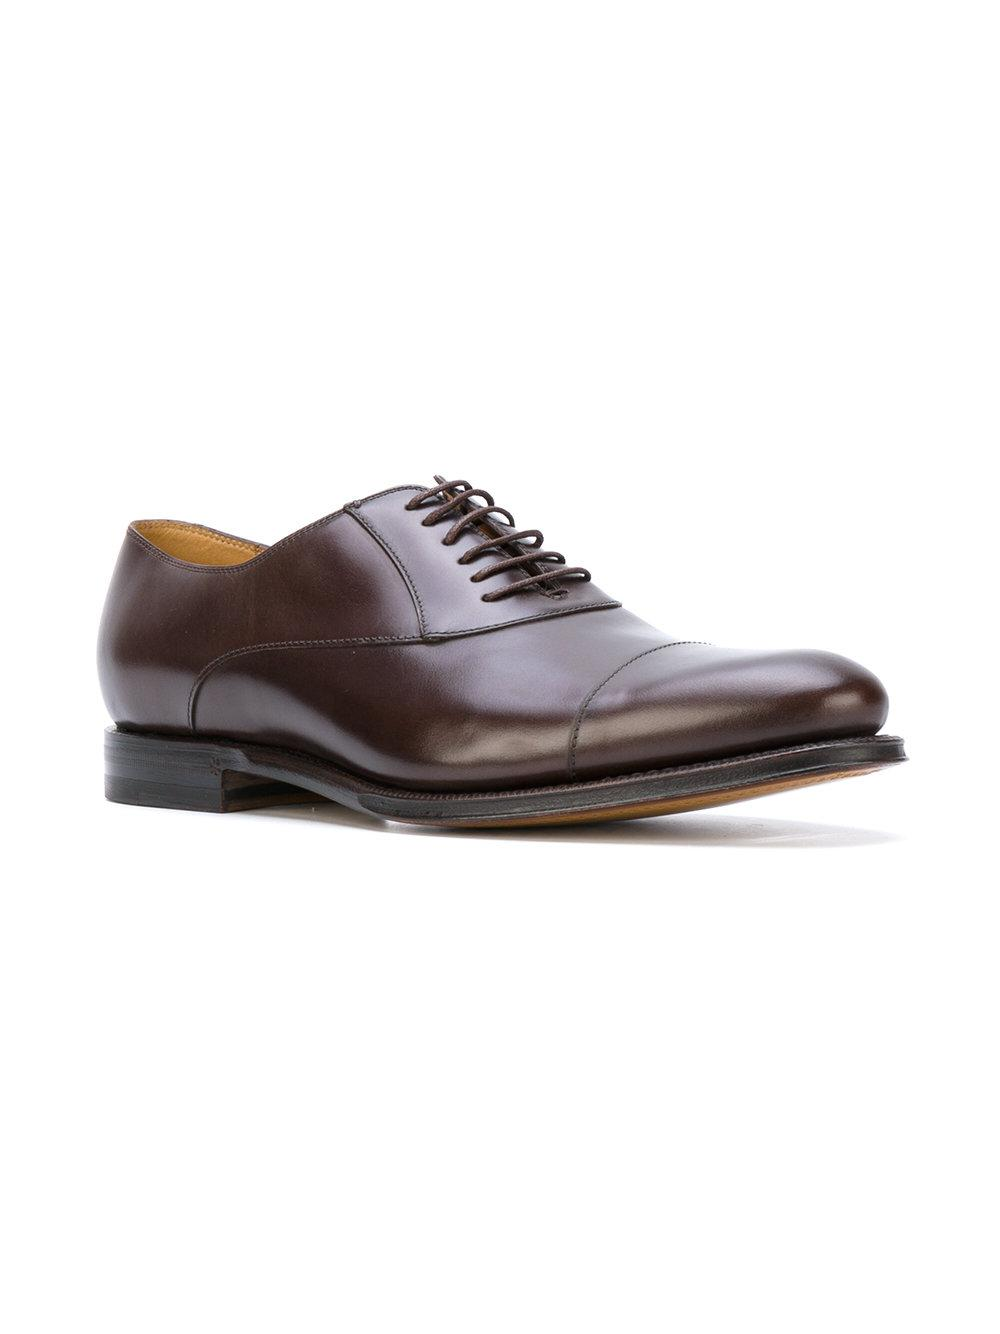 cbfb7a6f2 Gucci Lace Up Shoes in Brown for Men - Lyst